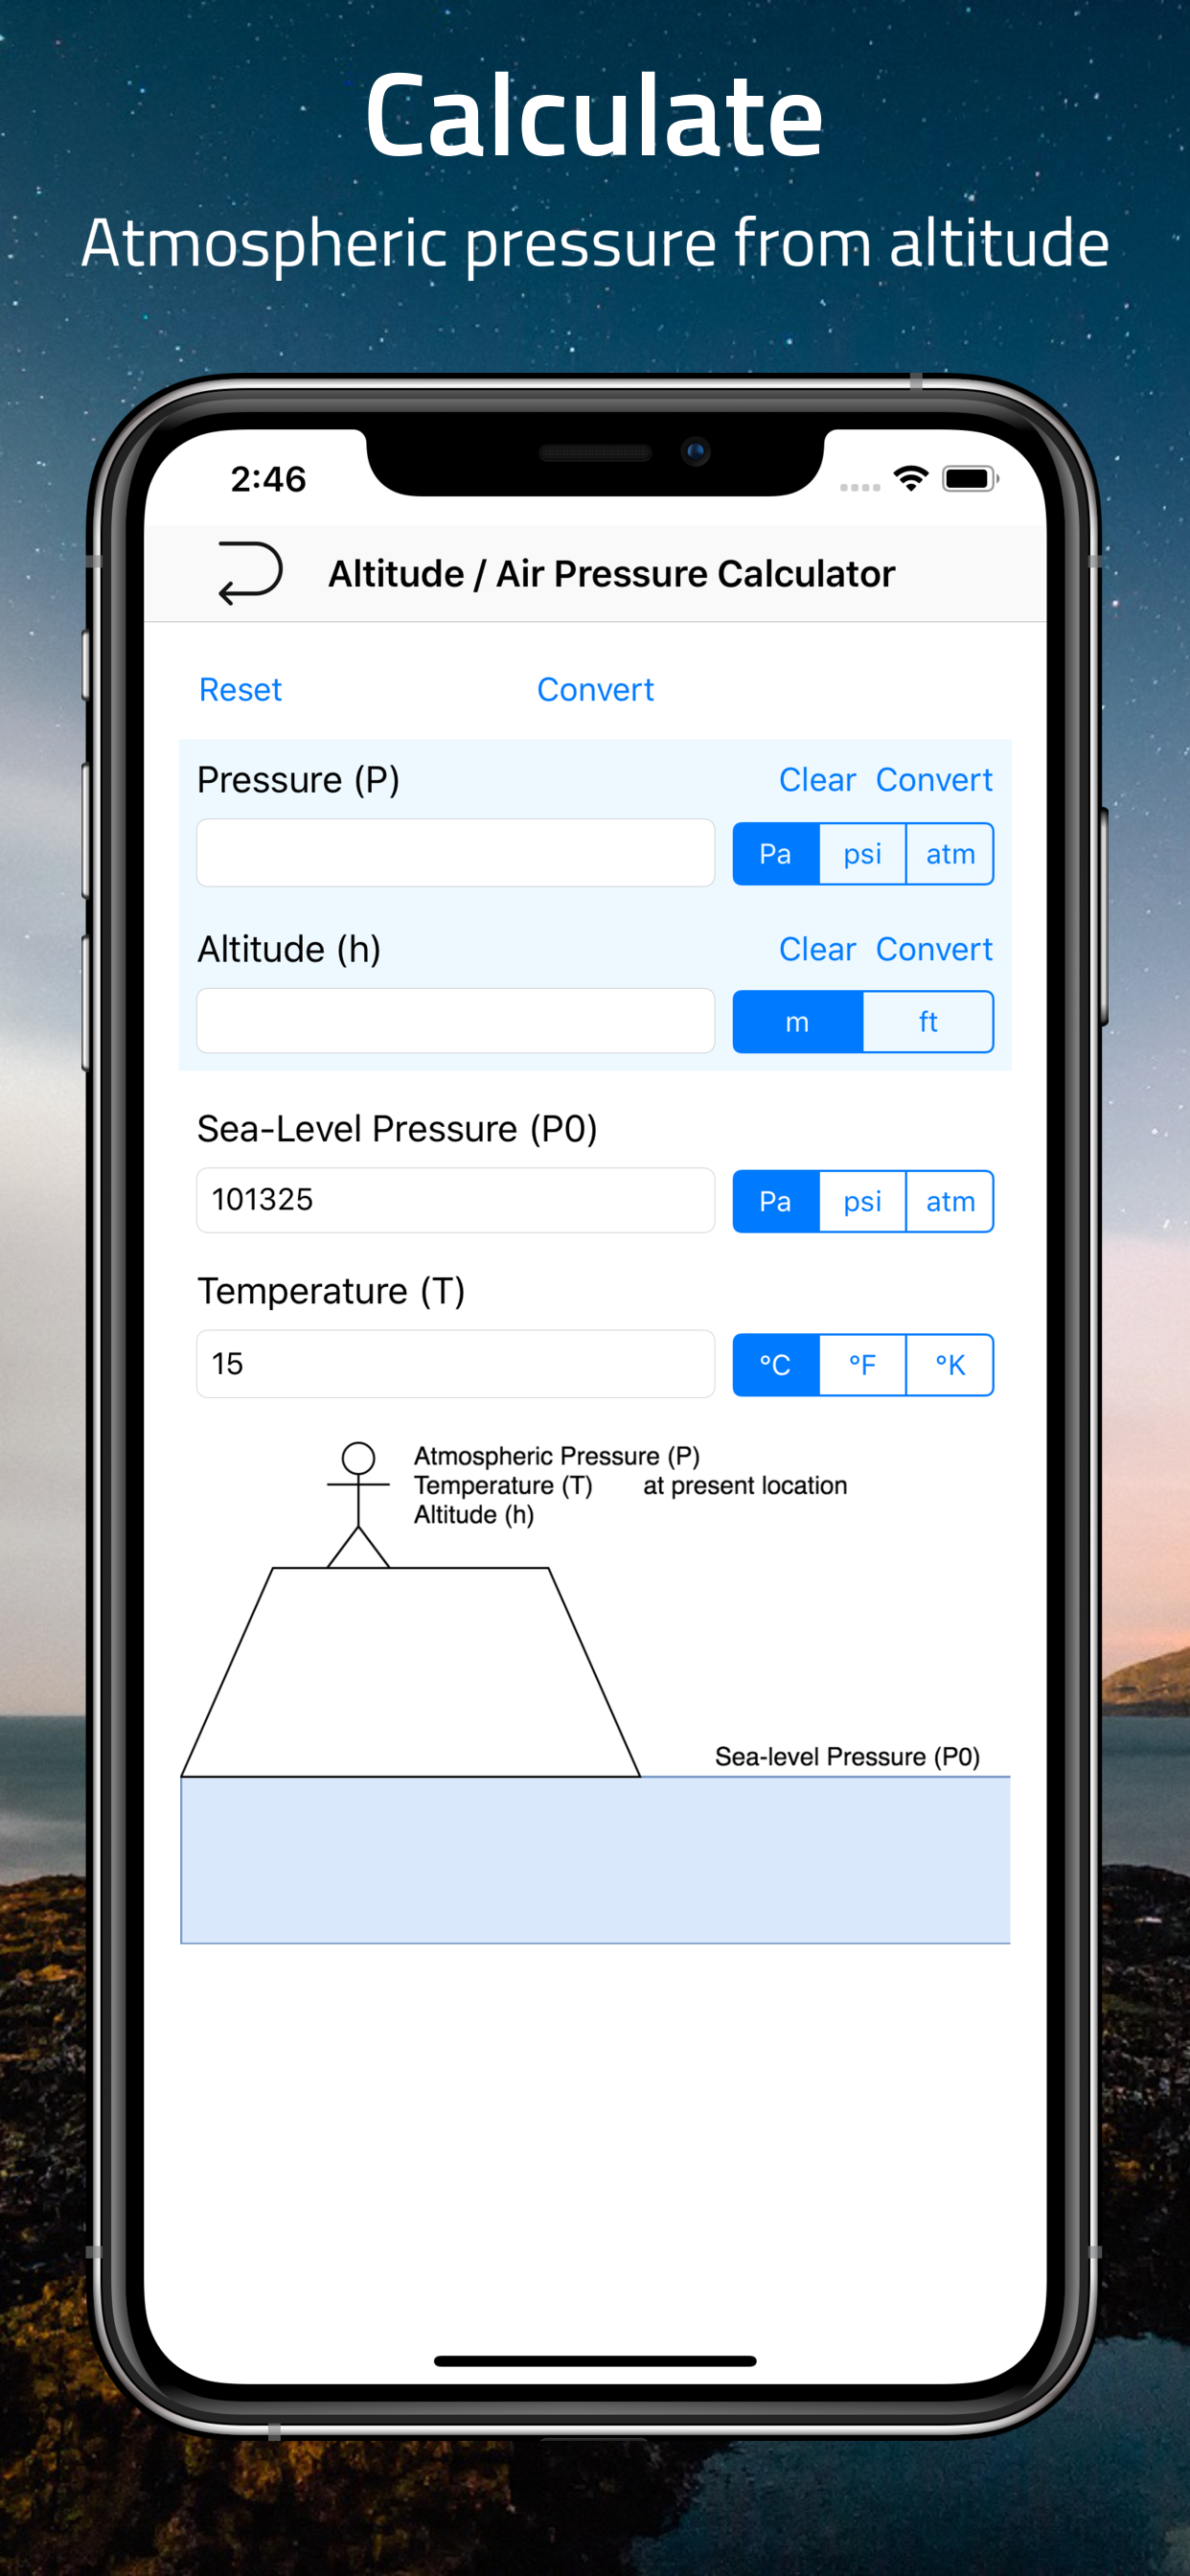 iPhone Xs Max-04Elevation - Calc_framed.png